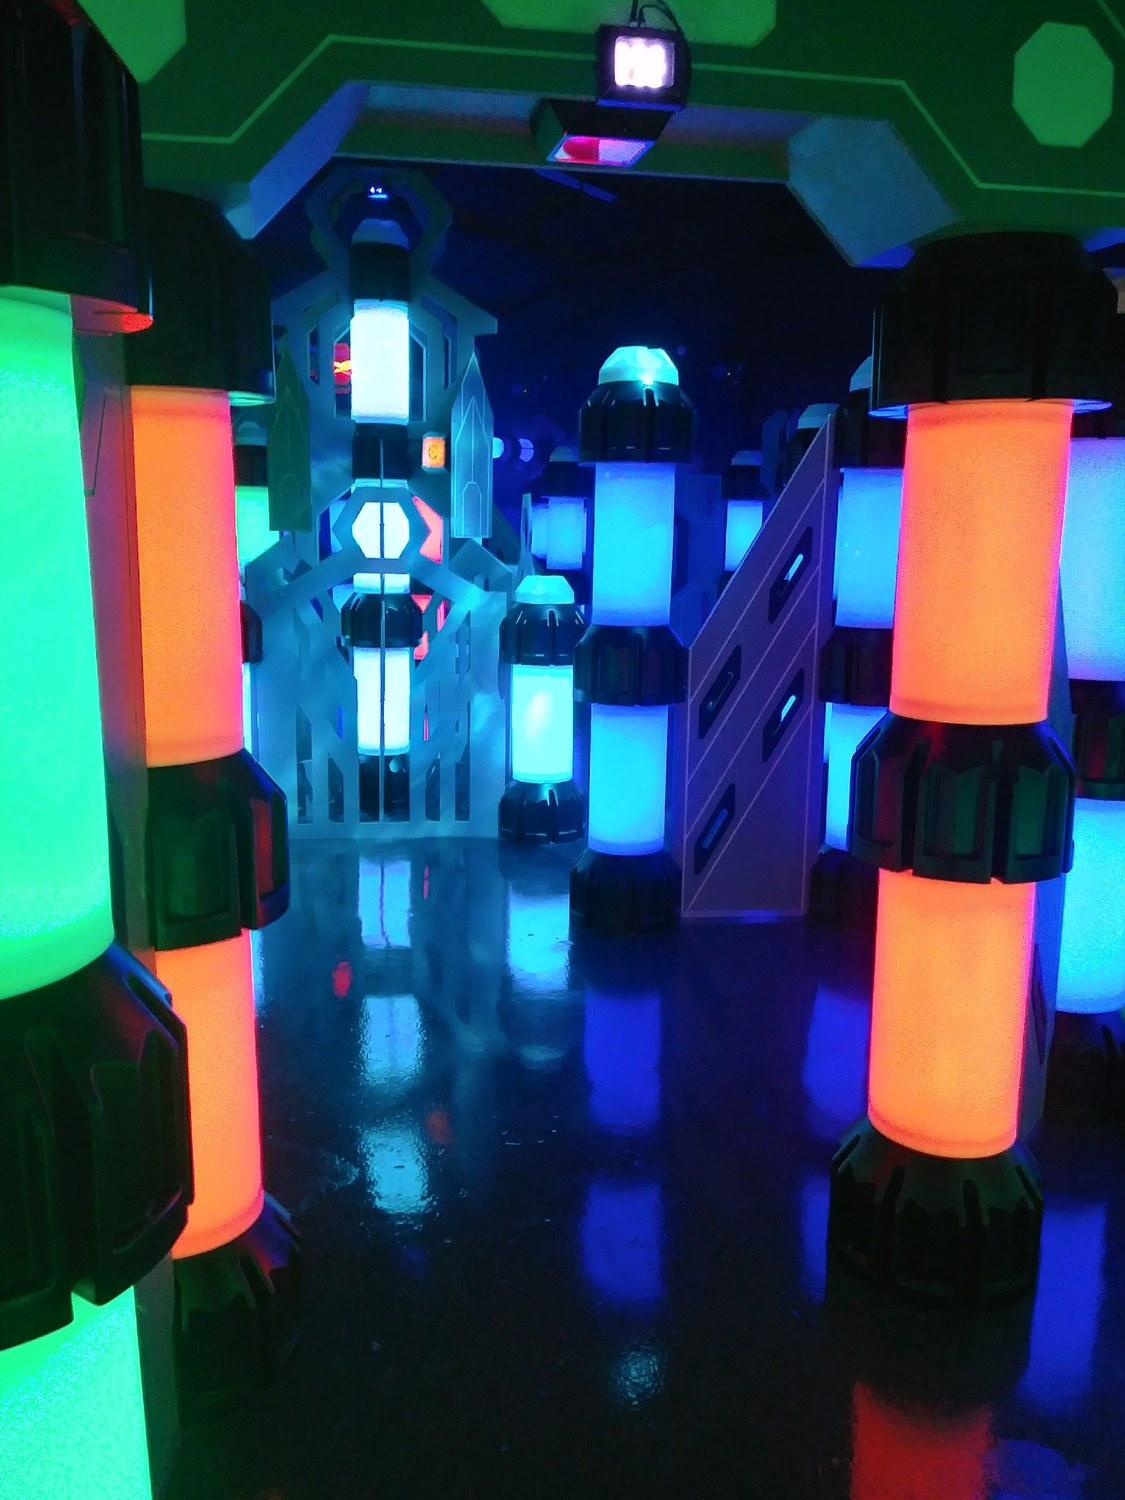 "<span style=""font-weight: bold;"">new year-round 3000+ sq. ft. LASER-TAG arena</span>"